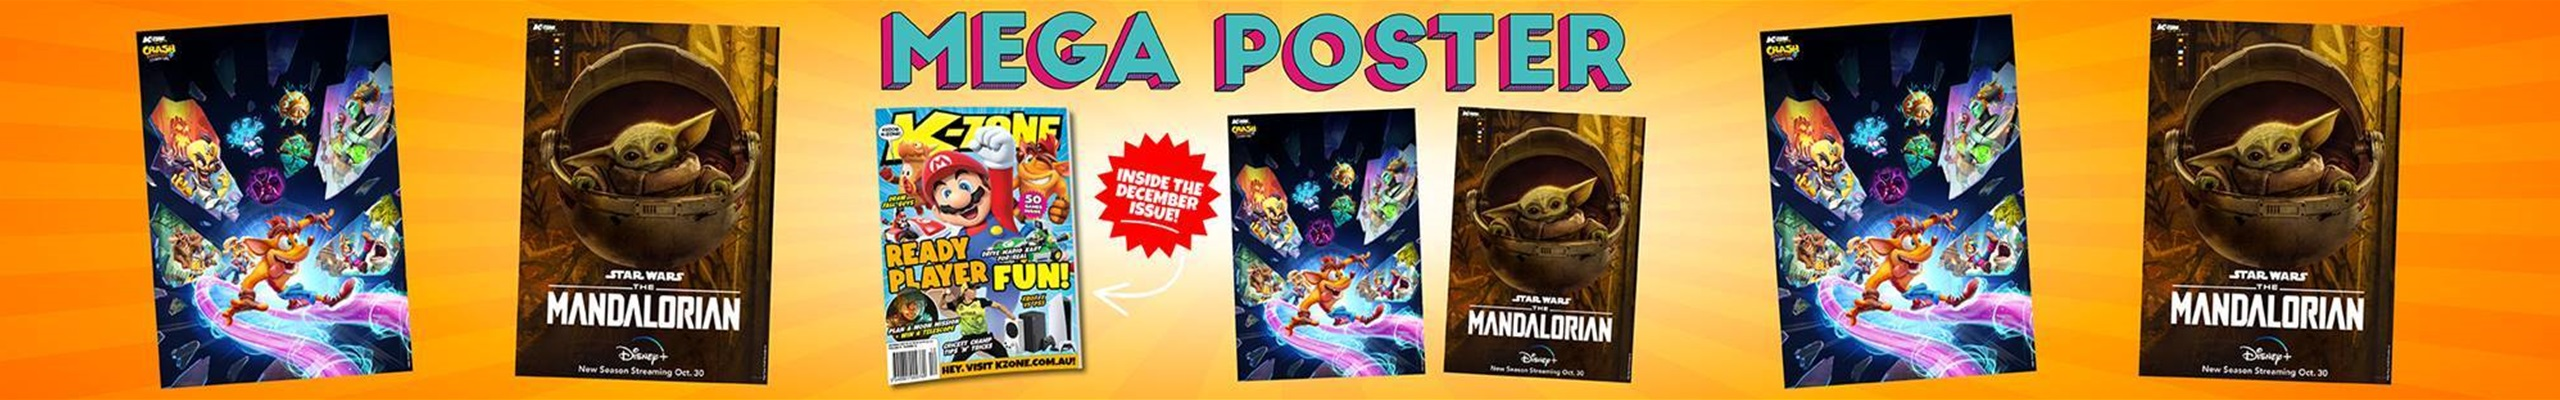 Don't Miss The December Issue Baby Yoda and Crash Bandicoot Mega Poster